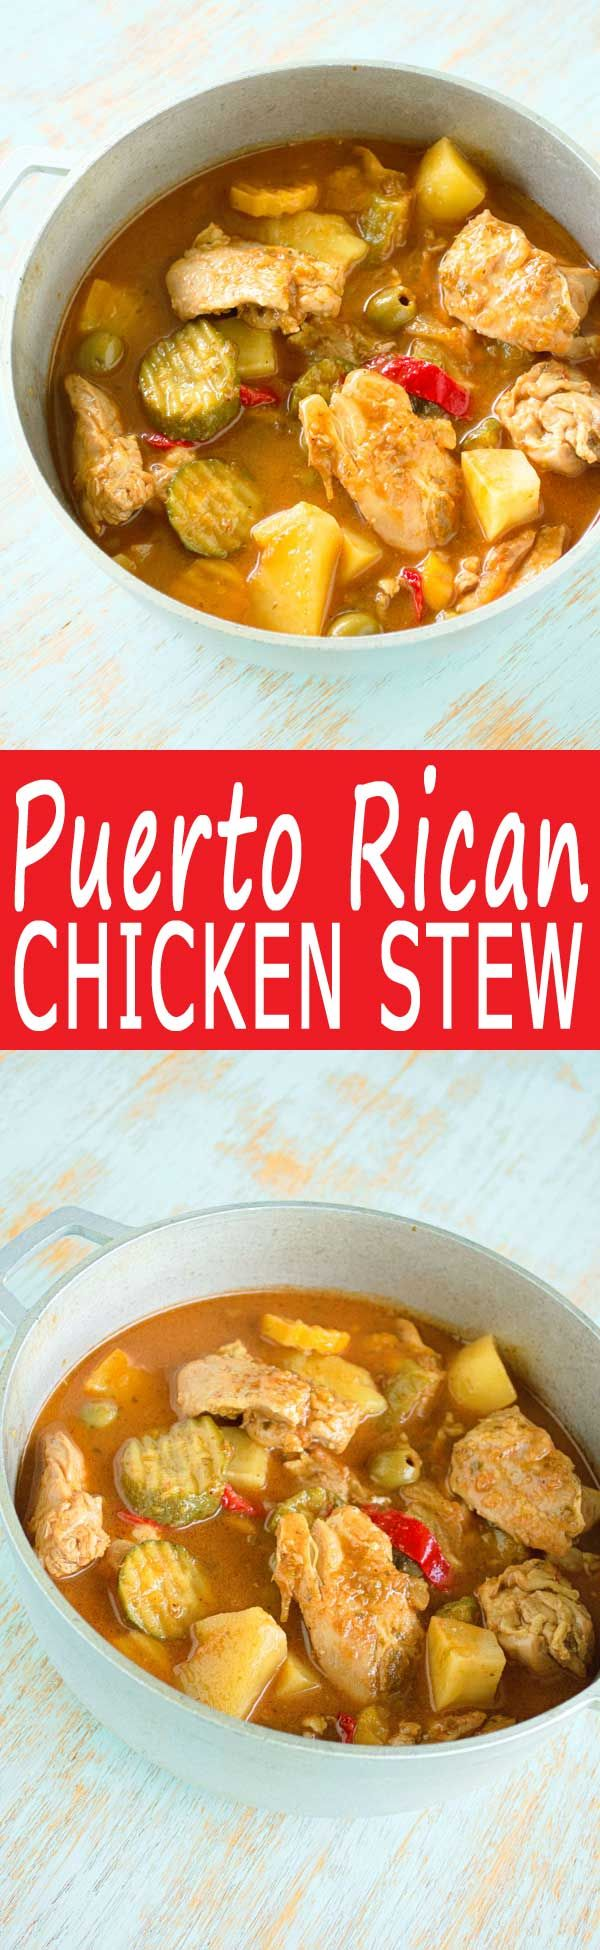 Puerto Rican Chicken Stew (Guisado de Pollo or Pollo en Fricase) with sofrito, tomato, potatoes and olives (Mexican Recipes With Chicken)